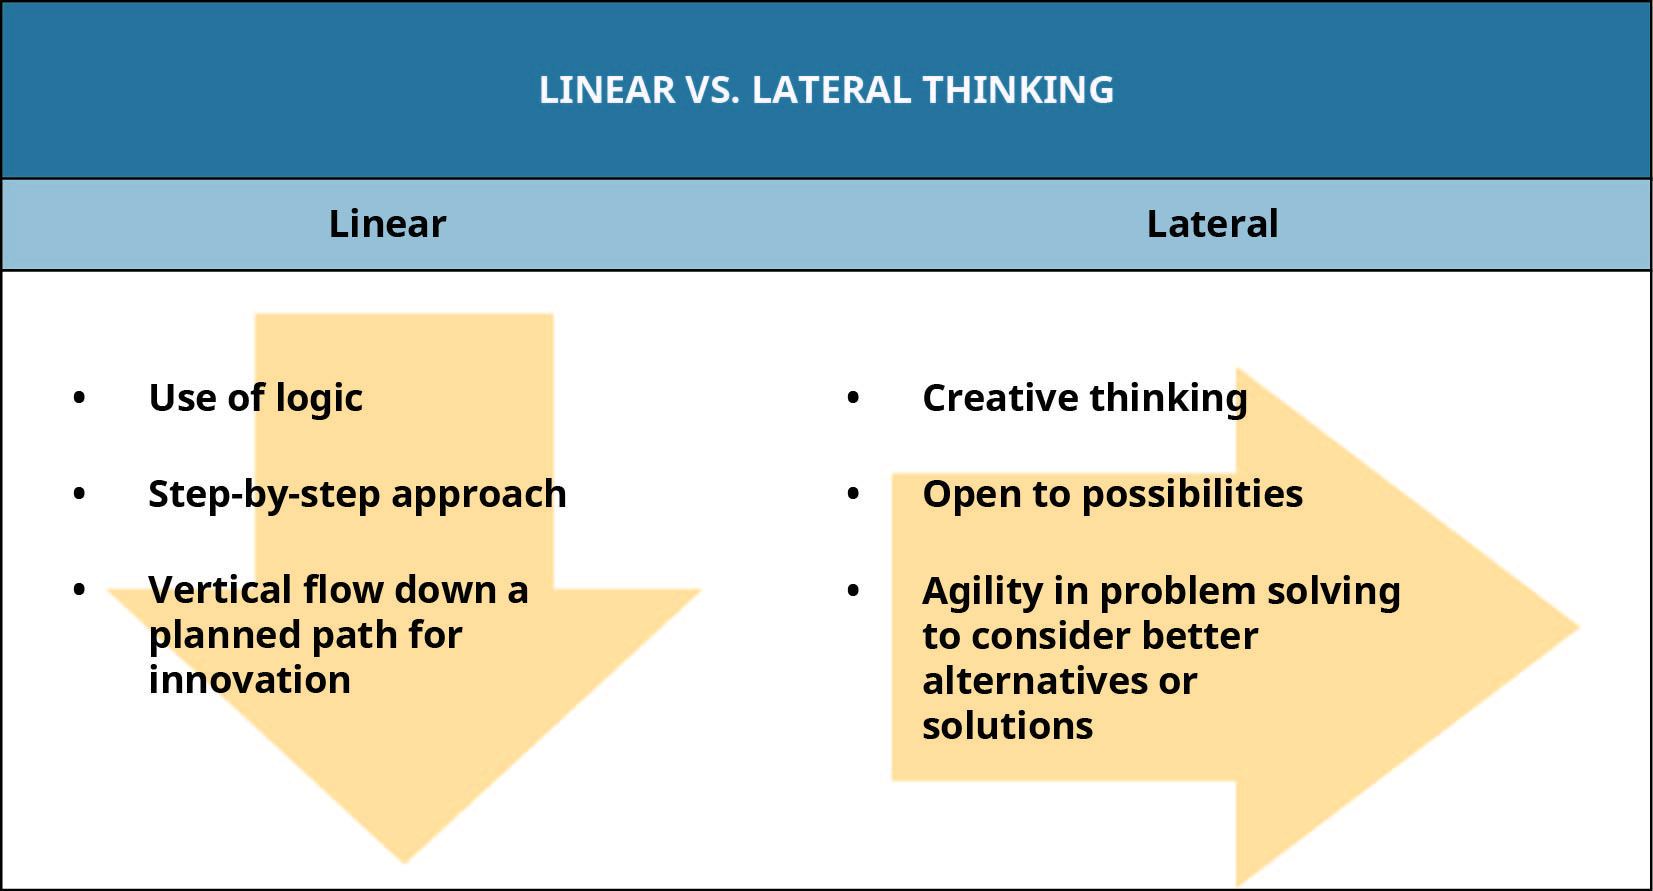 Linear thinking involves the use of logic, a step-by-step approach, and vertical flow down a planned path for innovation. Lateral thinking is creative thinking that is open to possibilities and uses agility in problem solving to consider better alternatives or solutions.